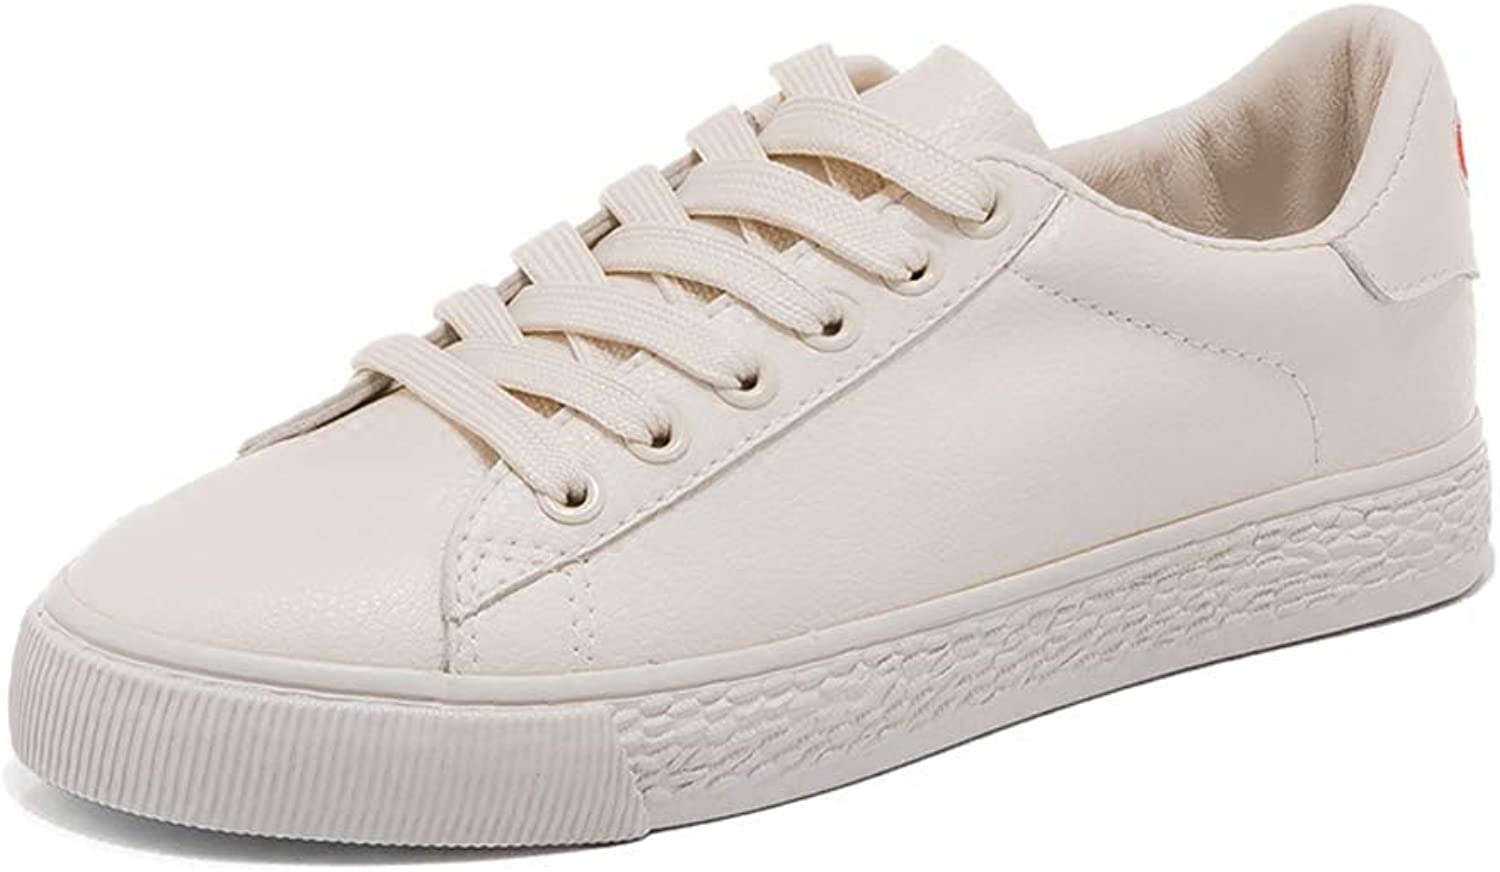 Fashion Solid color Sports shoes Women's PU Leather Lace Up Low shoes Flat Women's shoes